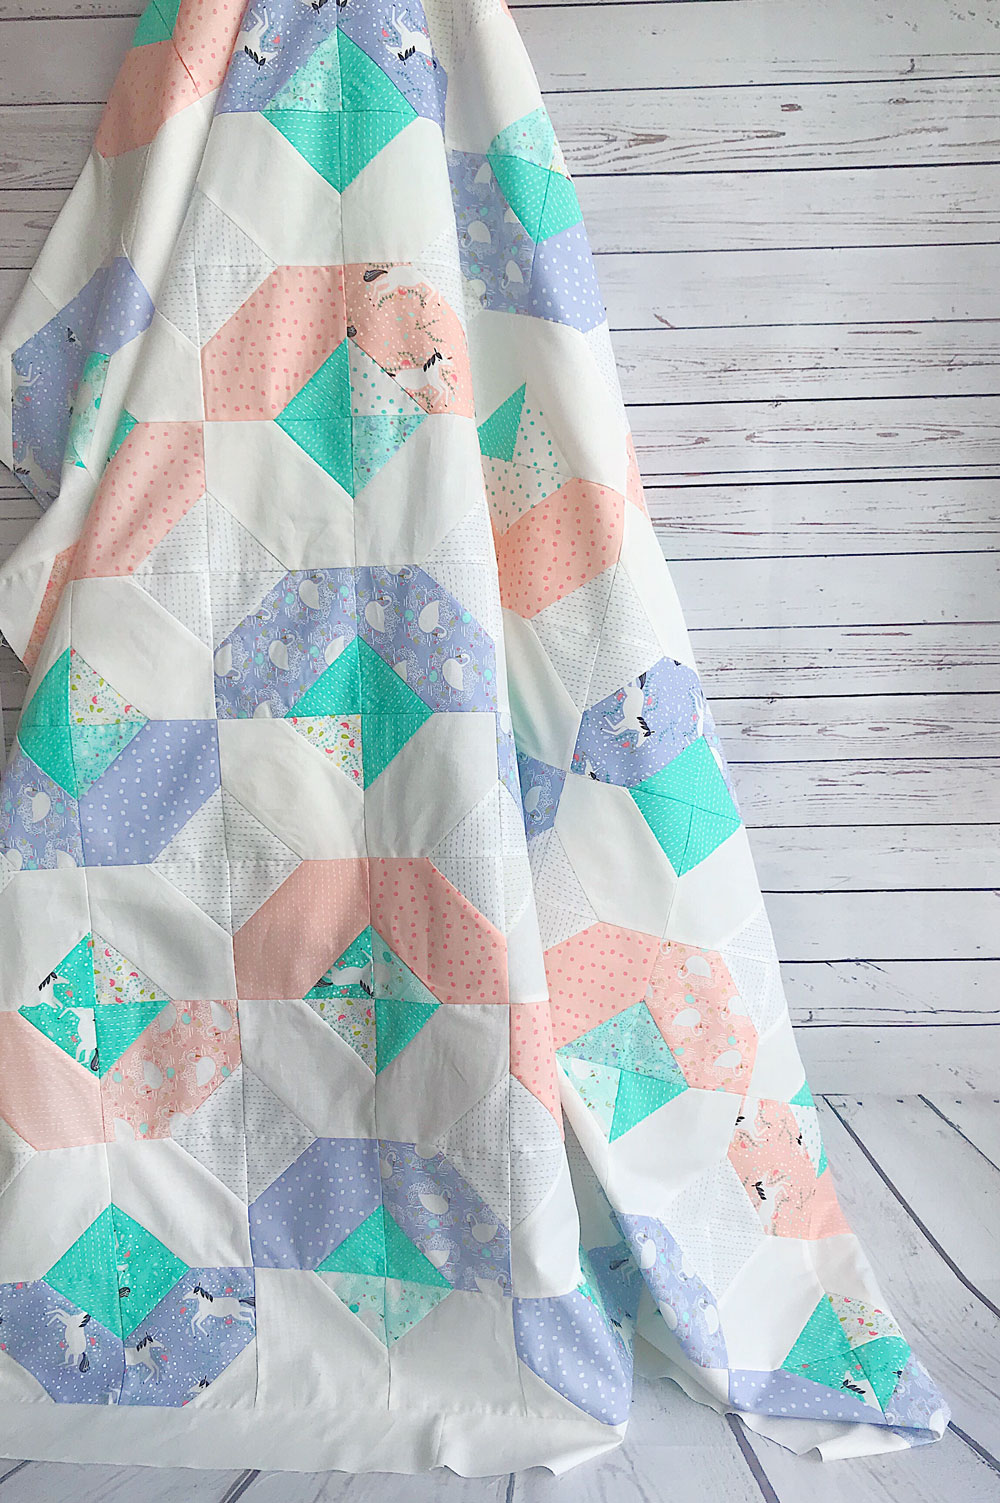 This Peach and Periwinkle Glitter quilt is so cute! Featuring ponies, swans, and sweet little flowers.